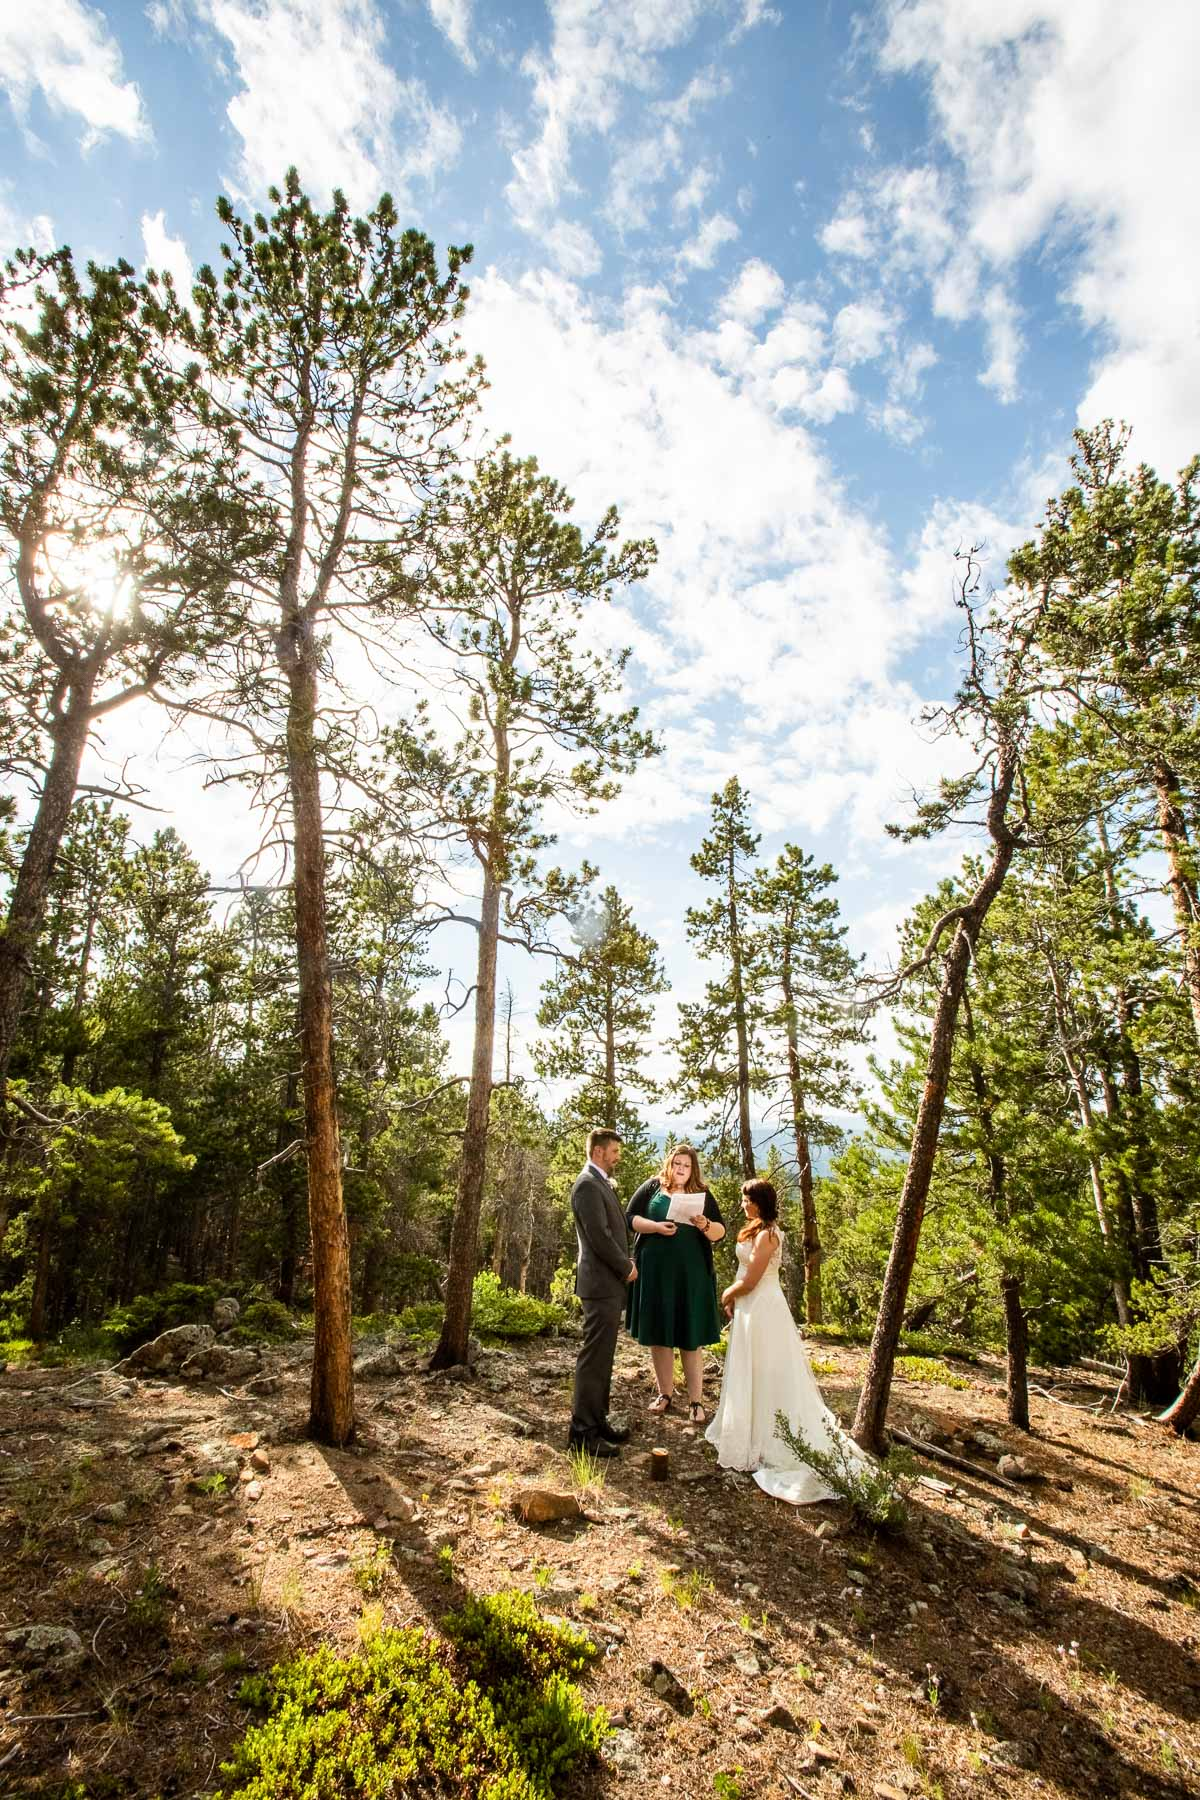 Outdoor Backyard Elopement Ceremony Image   The ceremony took place in a small clearing in the woods behind the couple's house